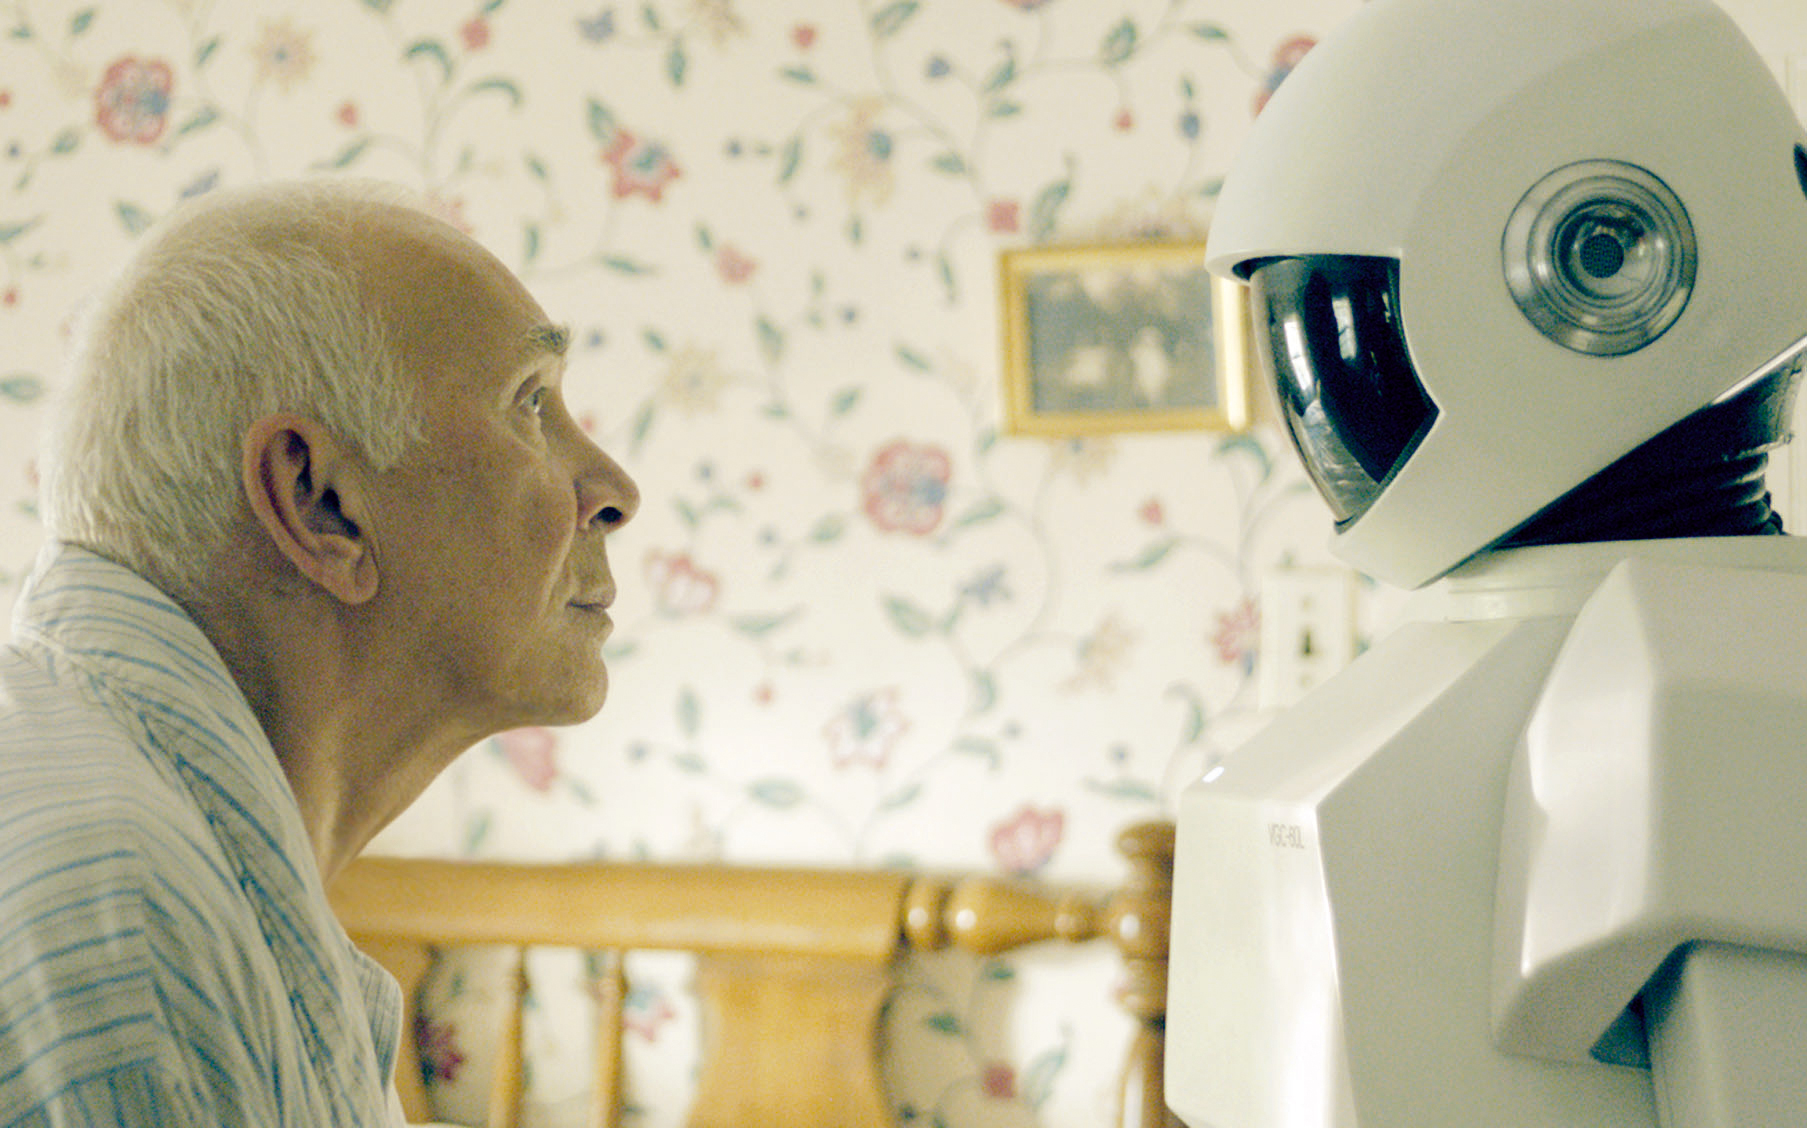 Frank Langella, James Marsden, Liv Tyler, Jeremy Sisto, and Susan Sarandon star in Robot & Frank now playing in Dallas.